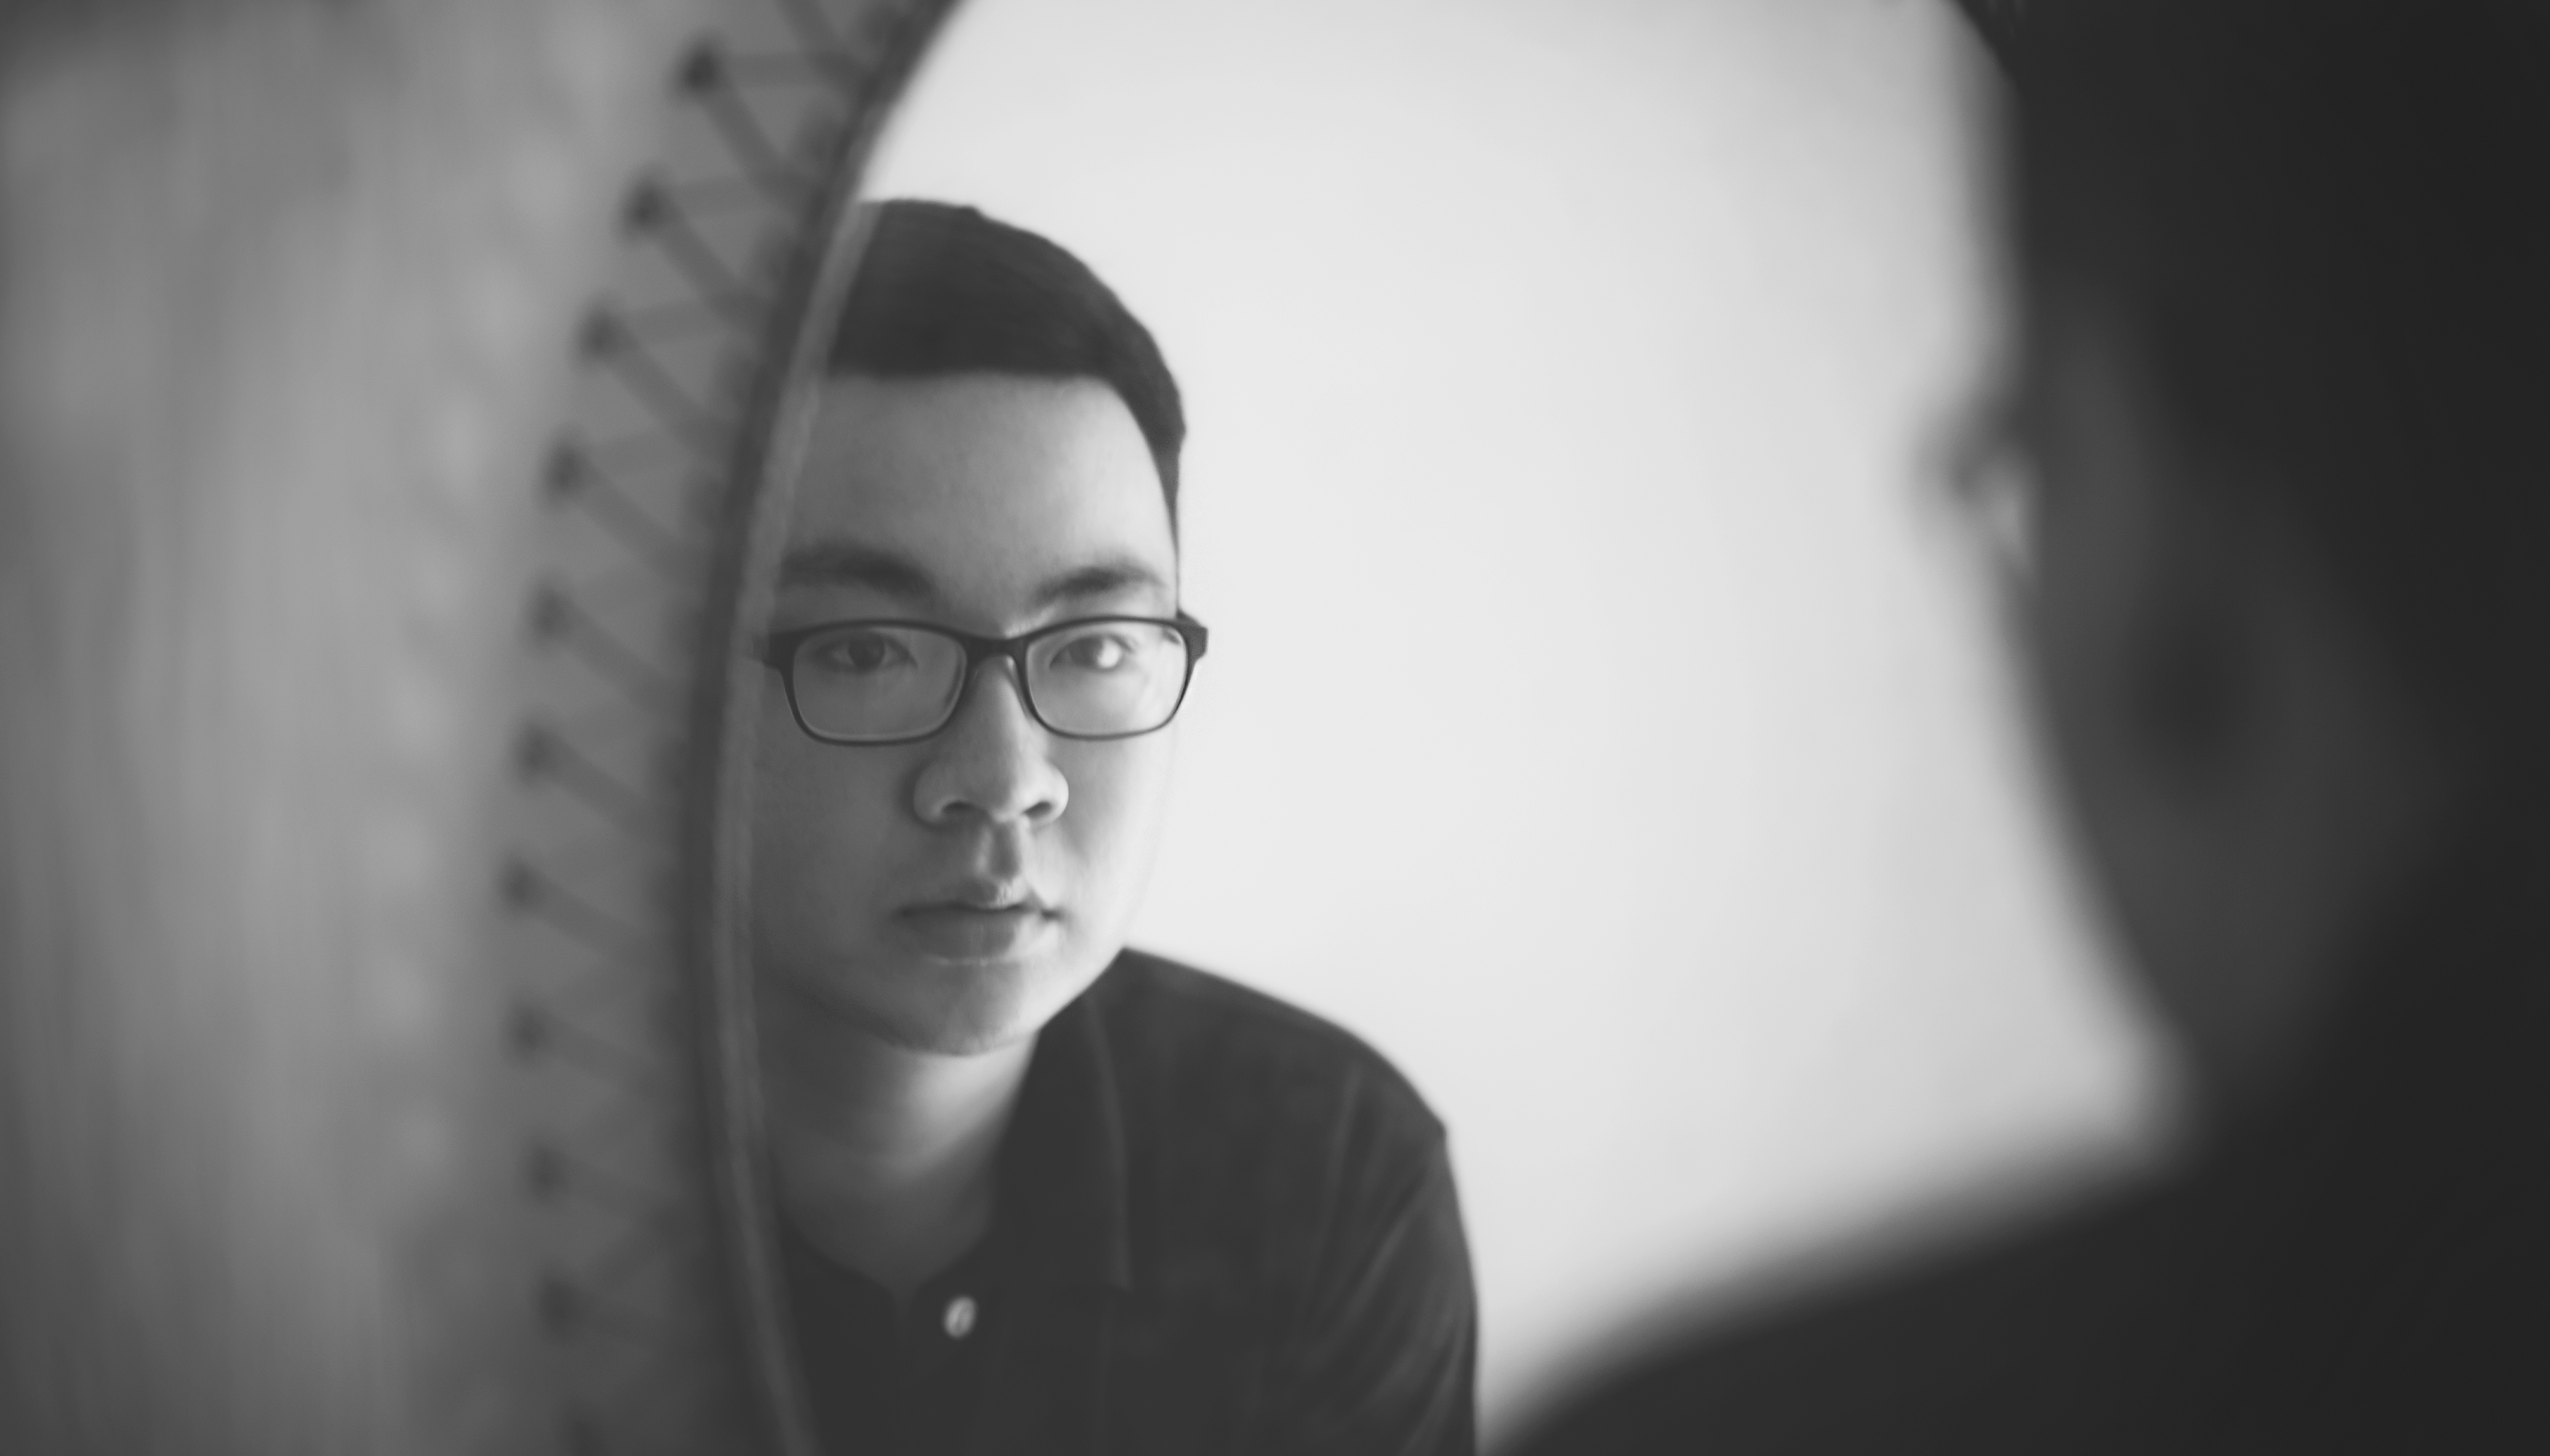 Monochrome photography of a man looking in front of mirror for Mirror reflection